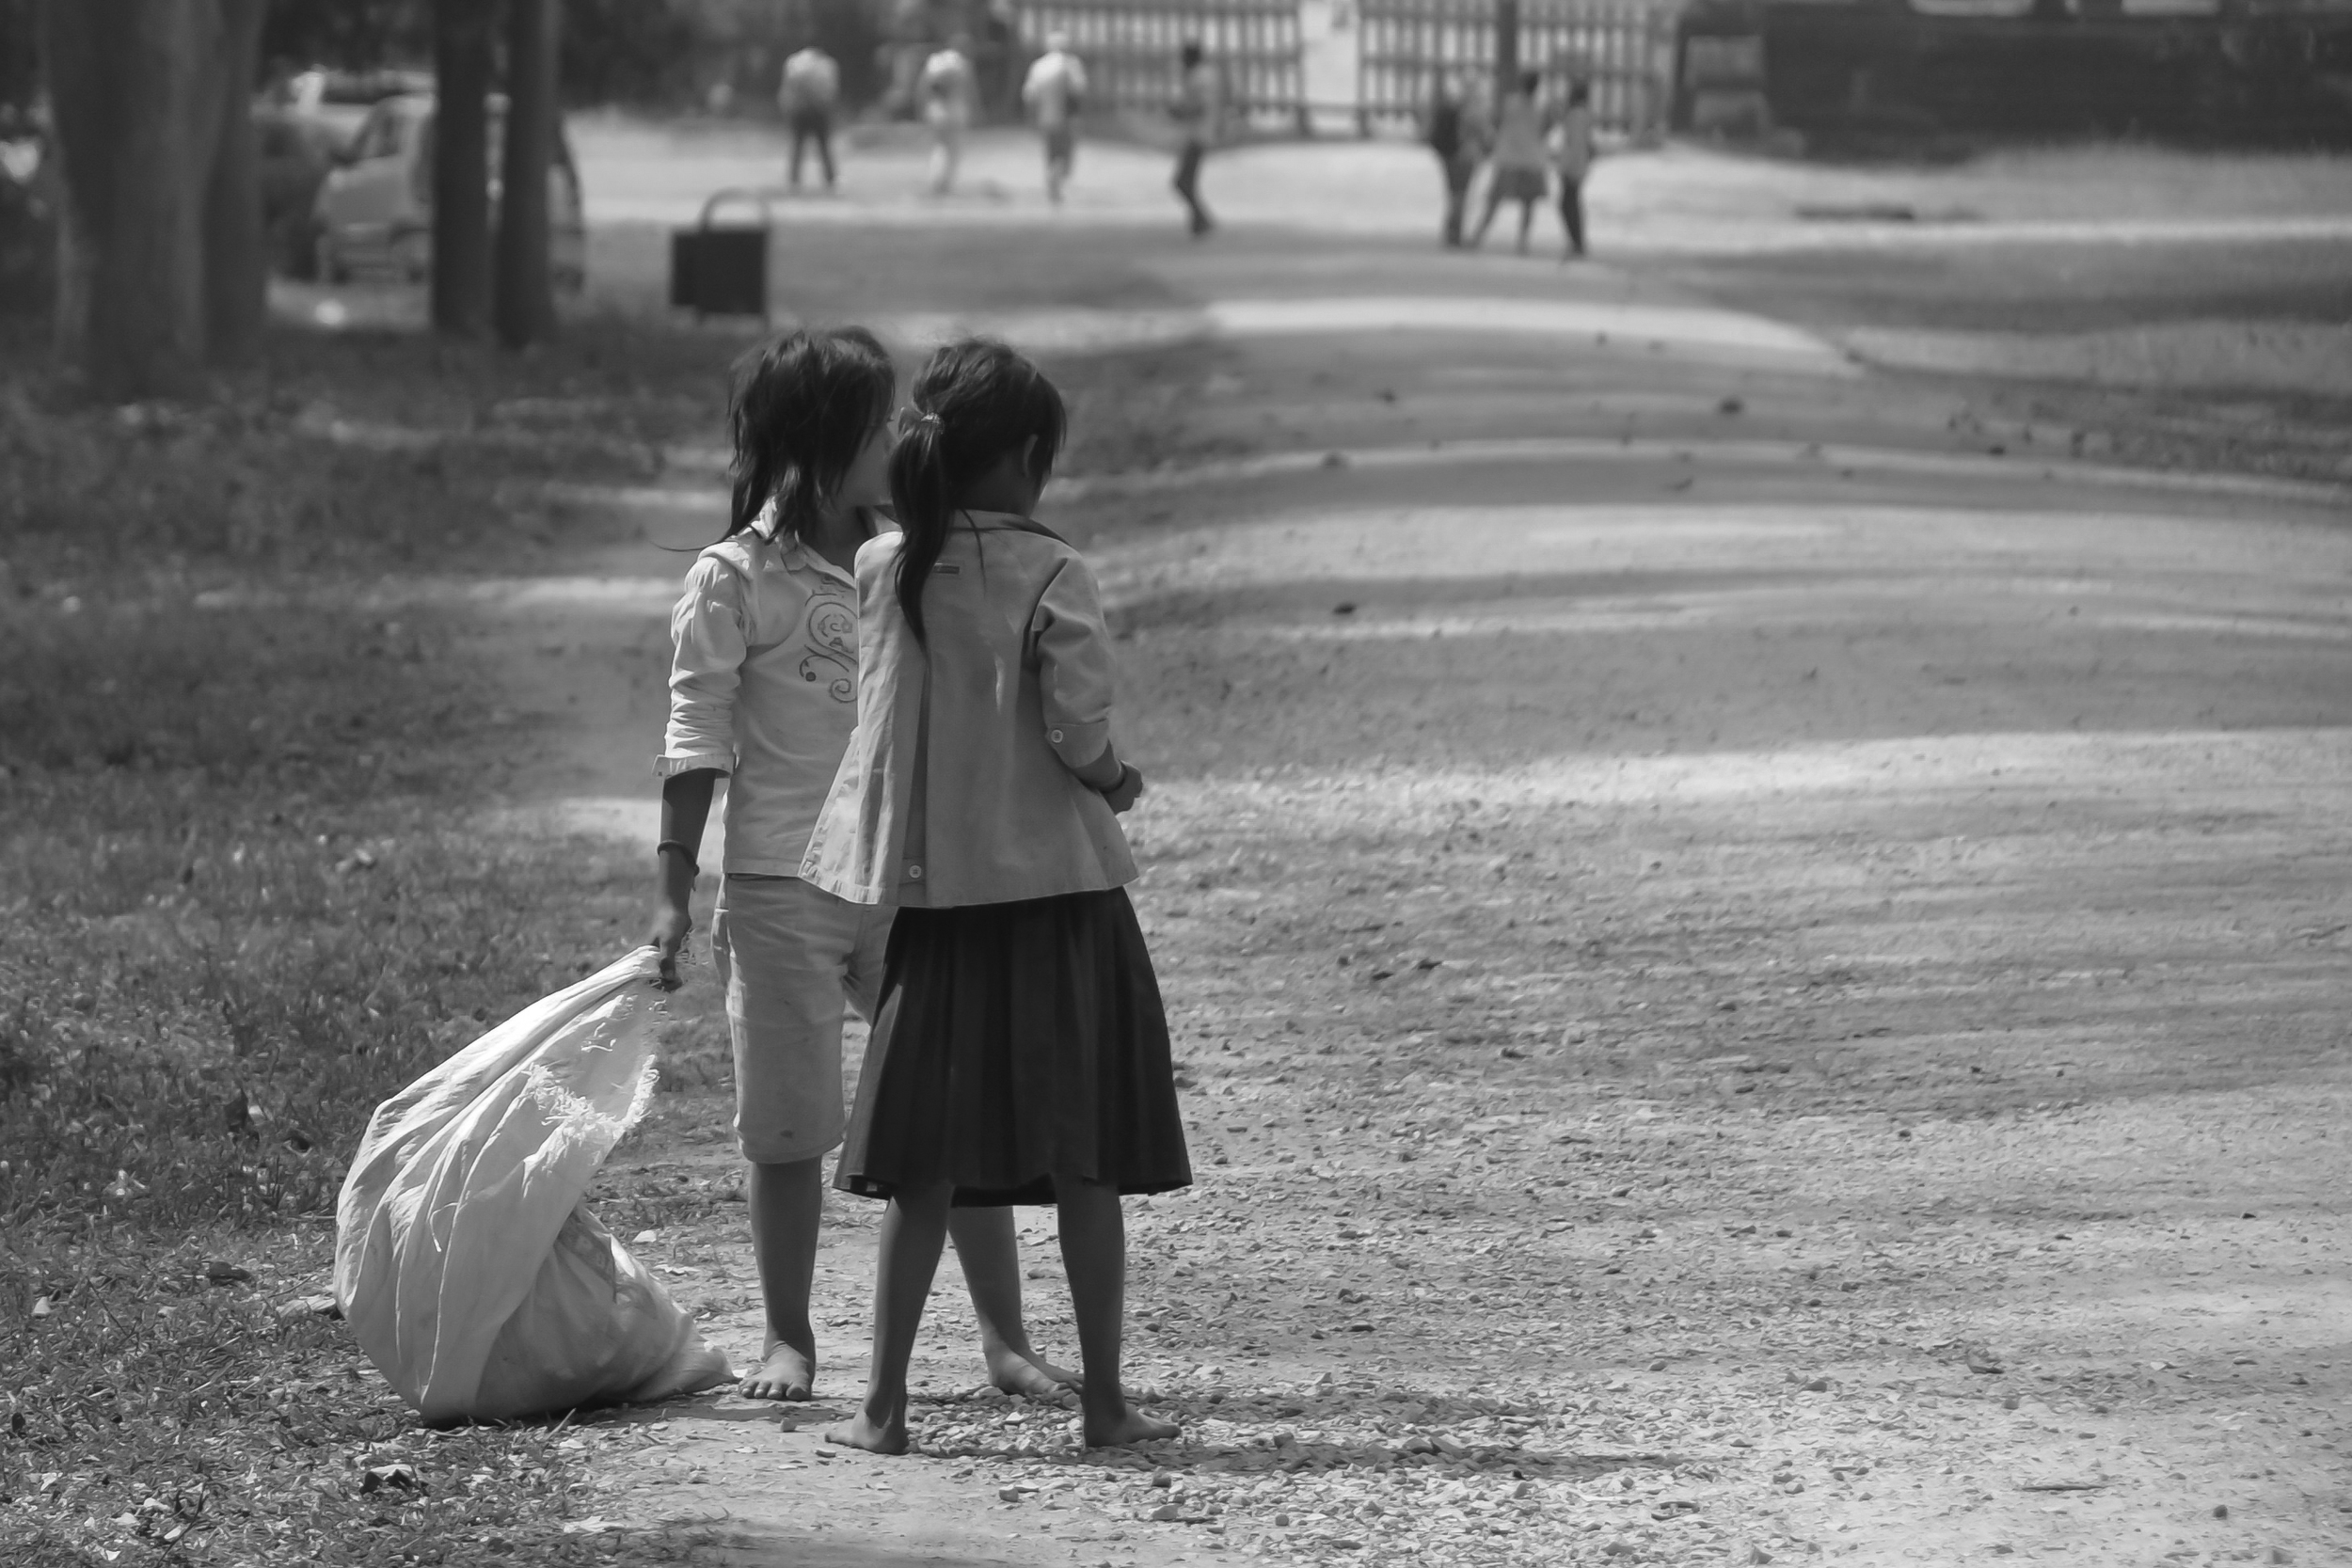 Lost Childhood - Cambodia